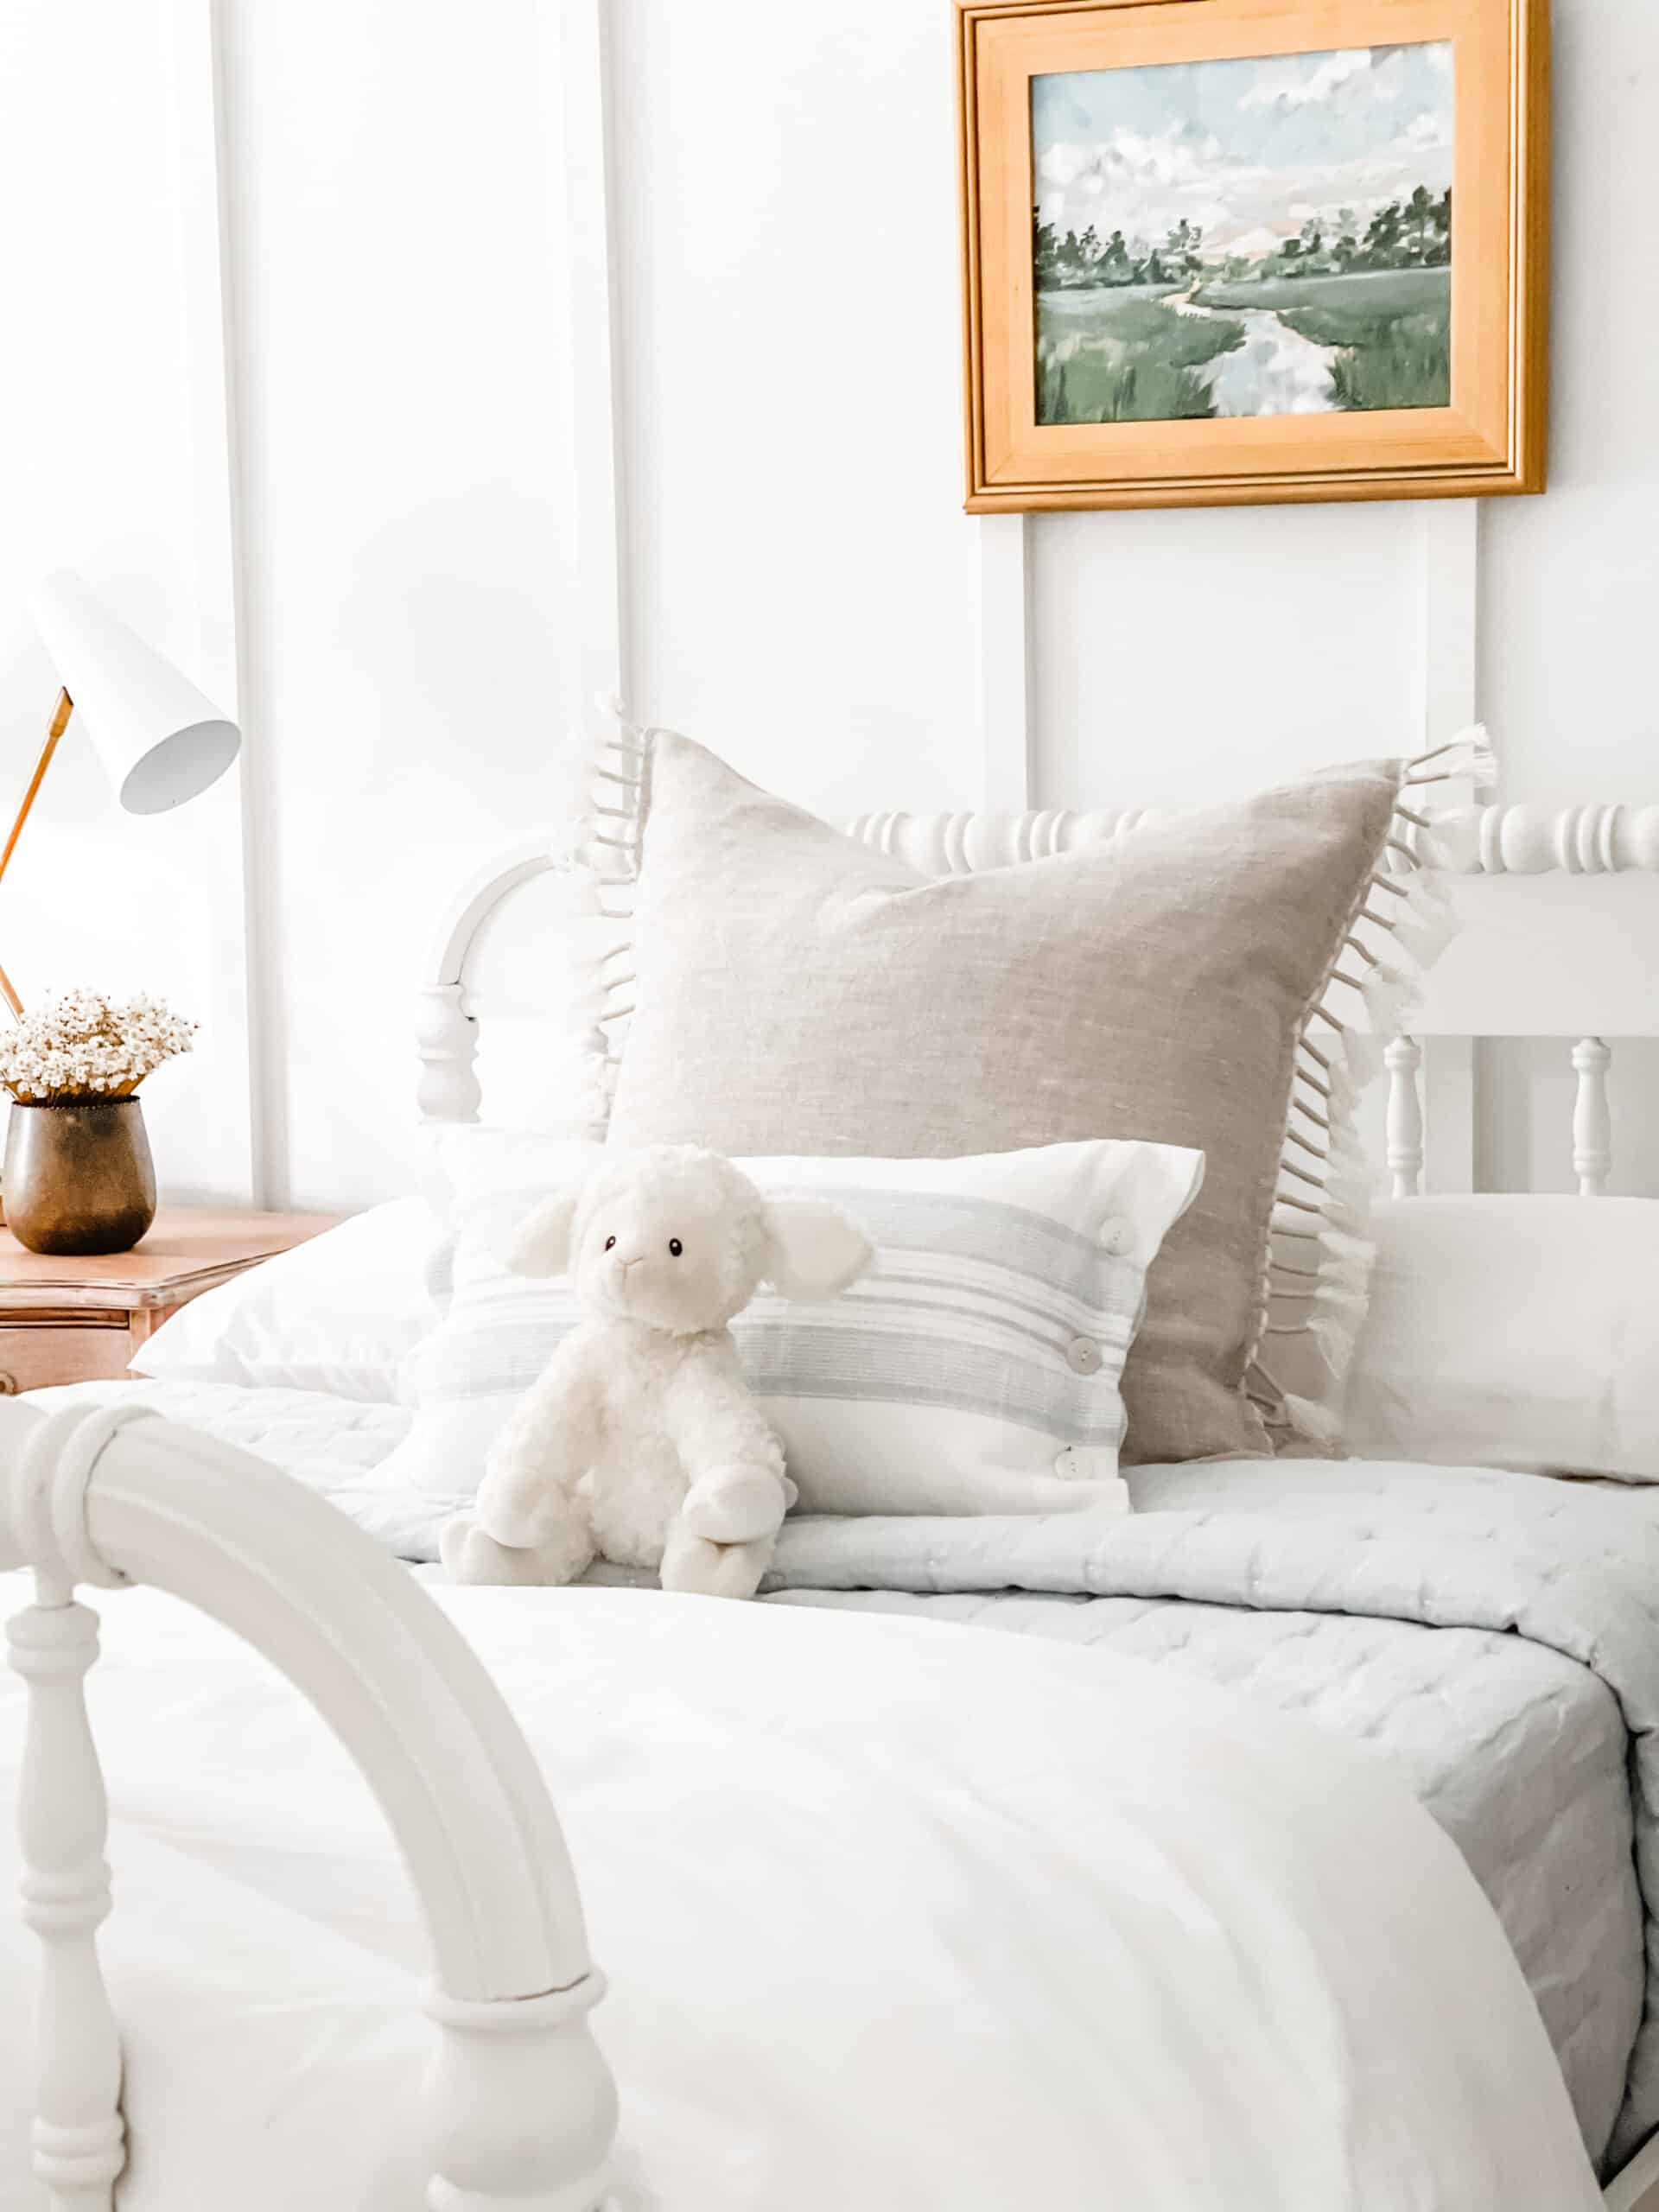 Topanga pillow from Serena & Lily in coastal kids bedroom.